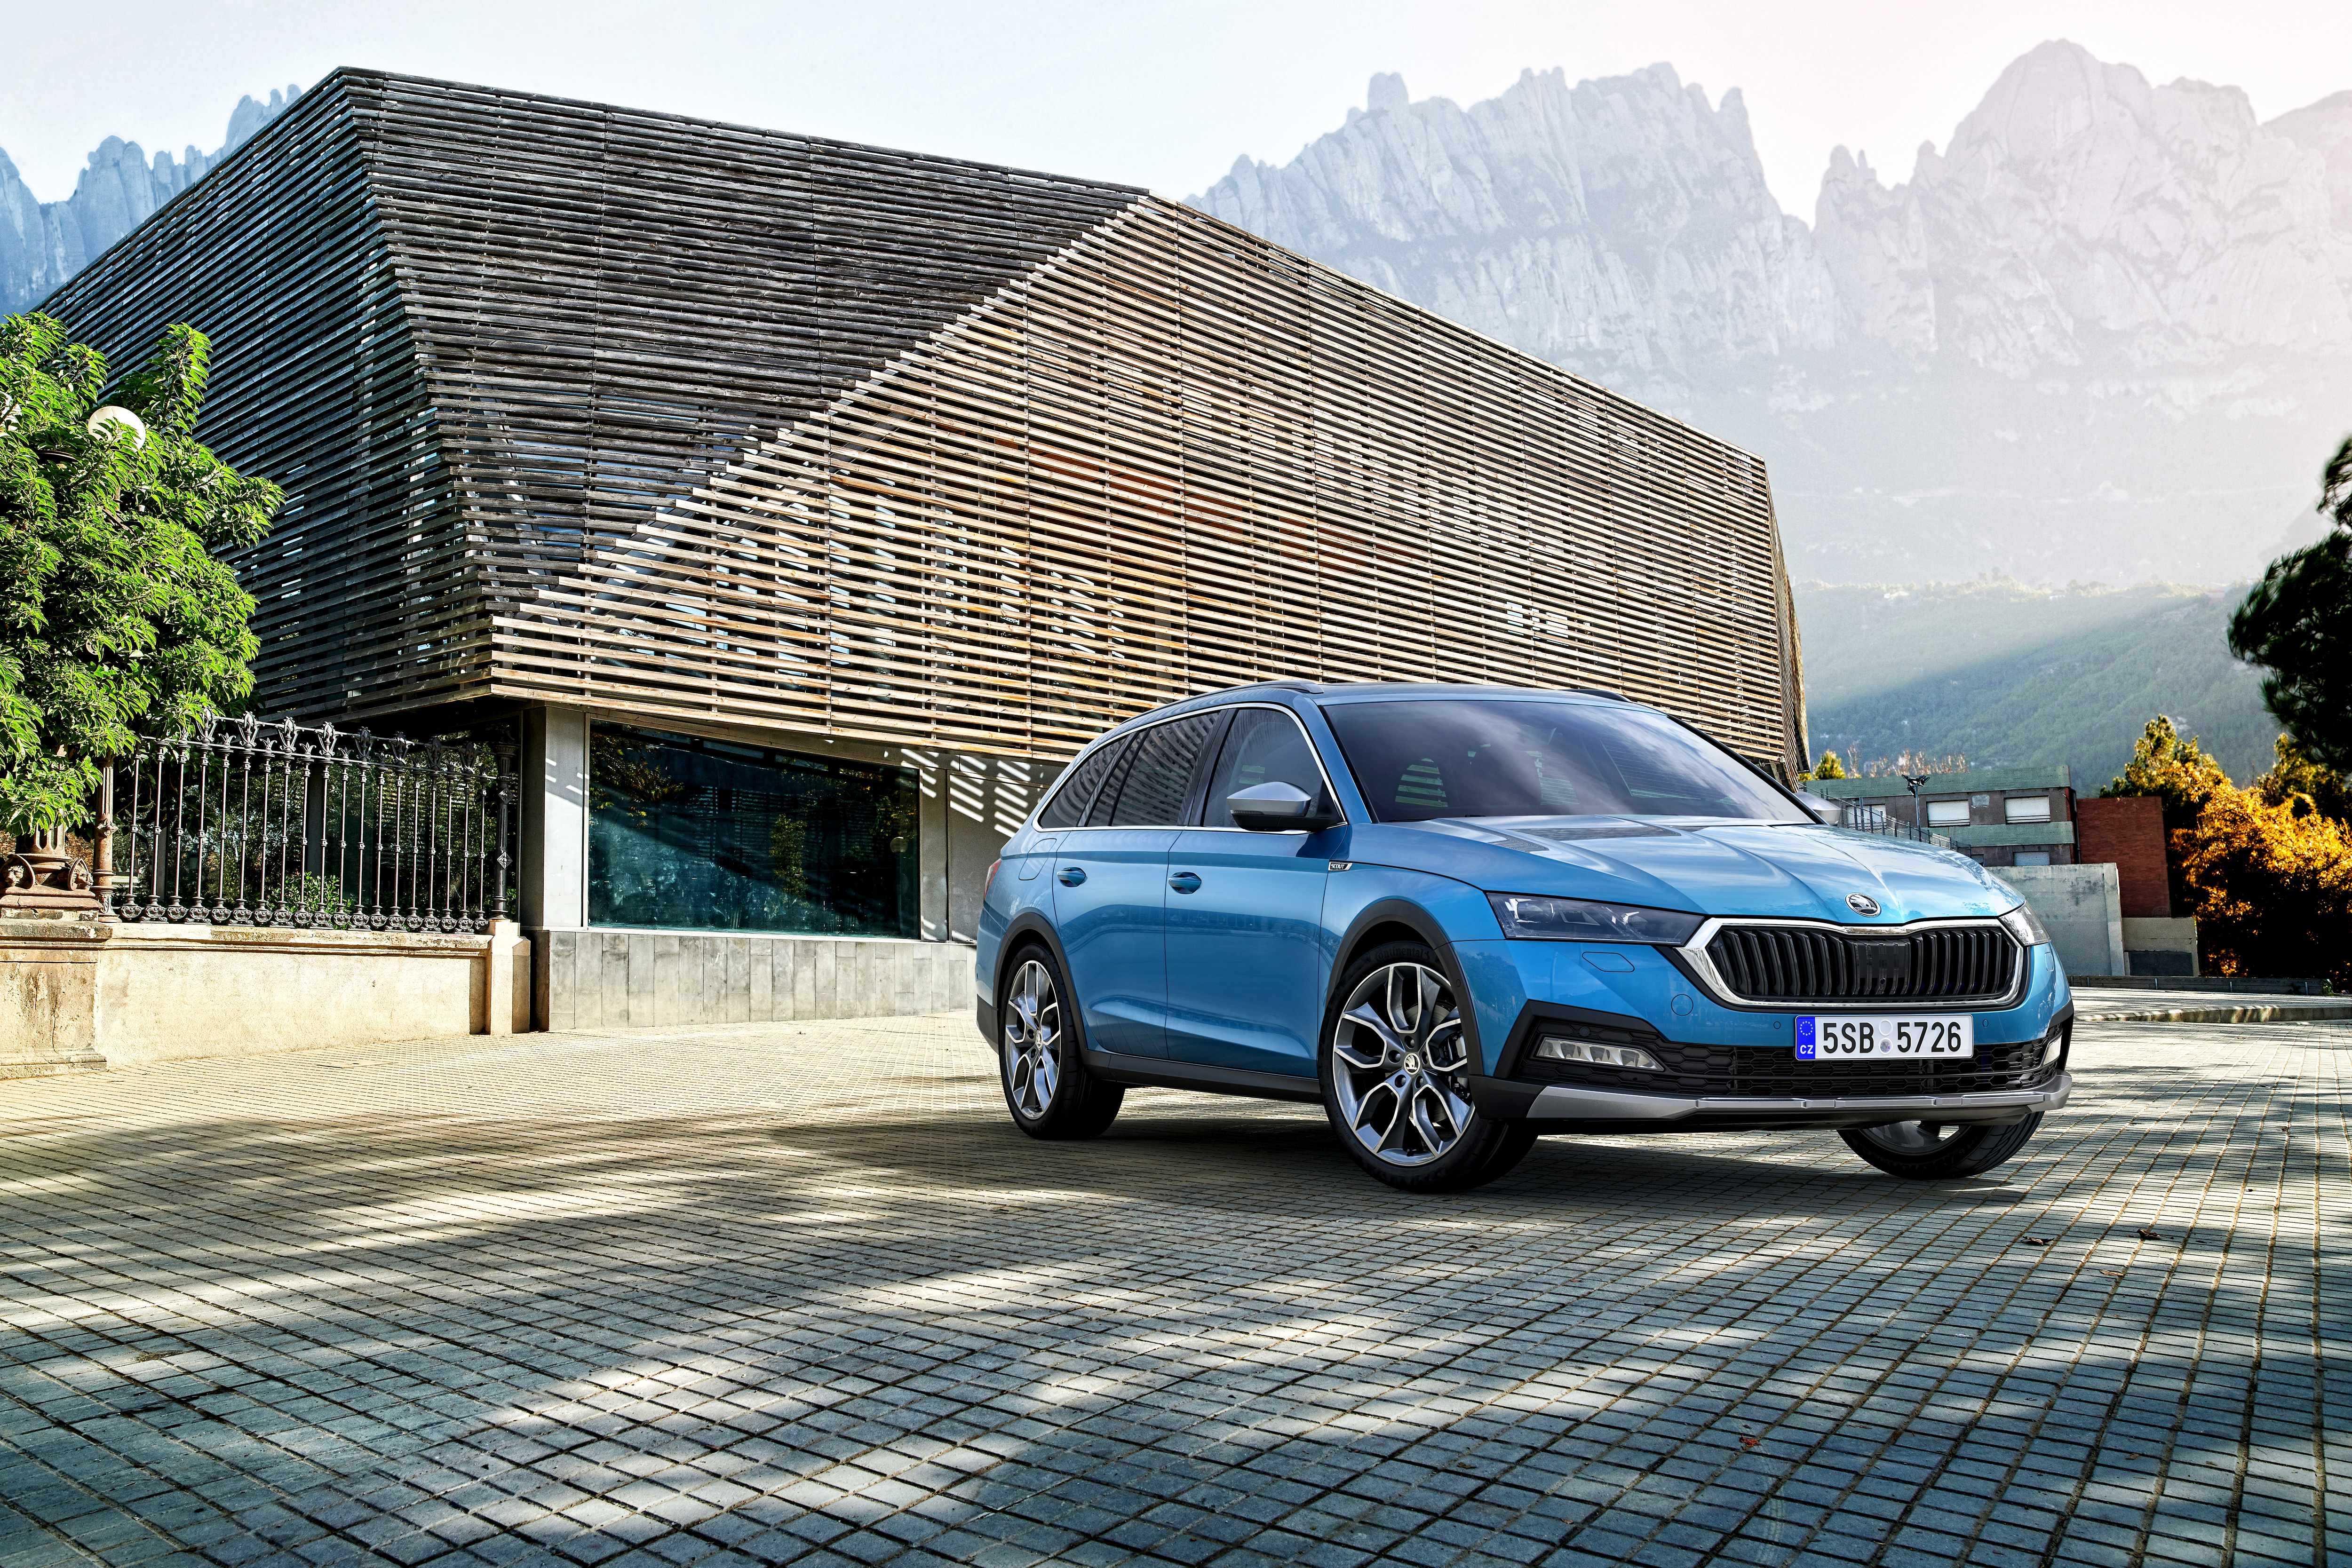 Lifestyle estate in its 3rd generation: The new SKODA OCTAVIA SCOUT - Image 5